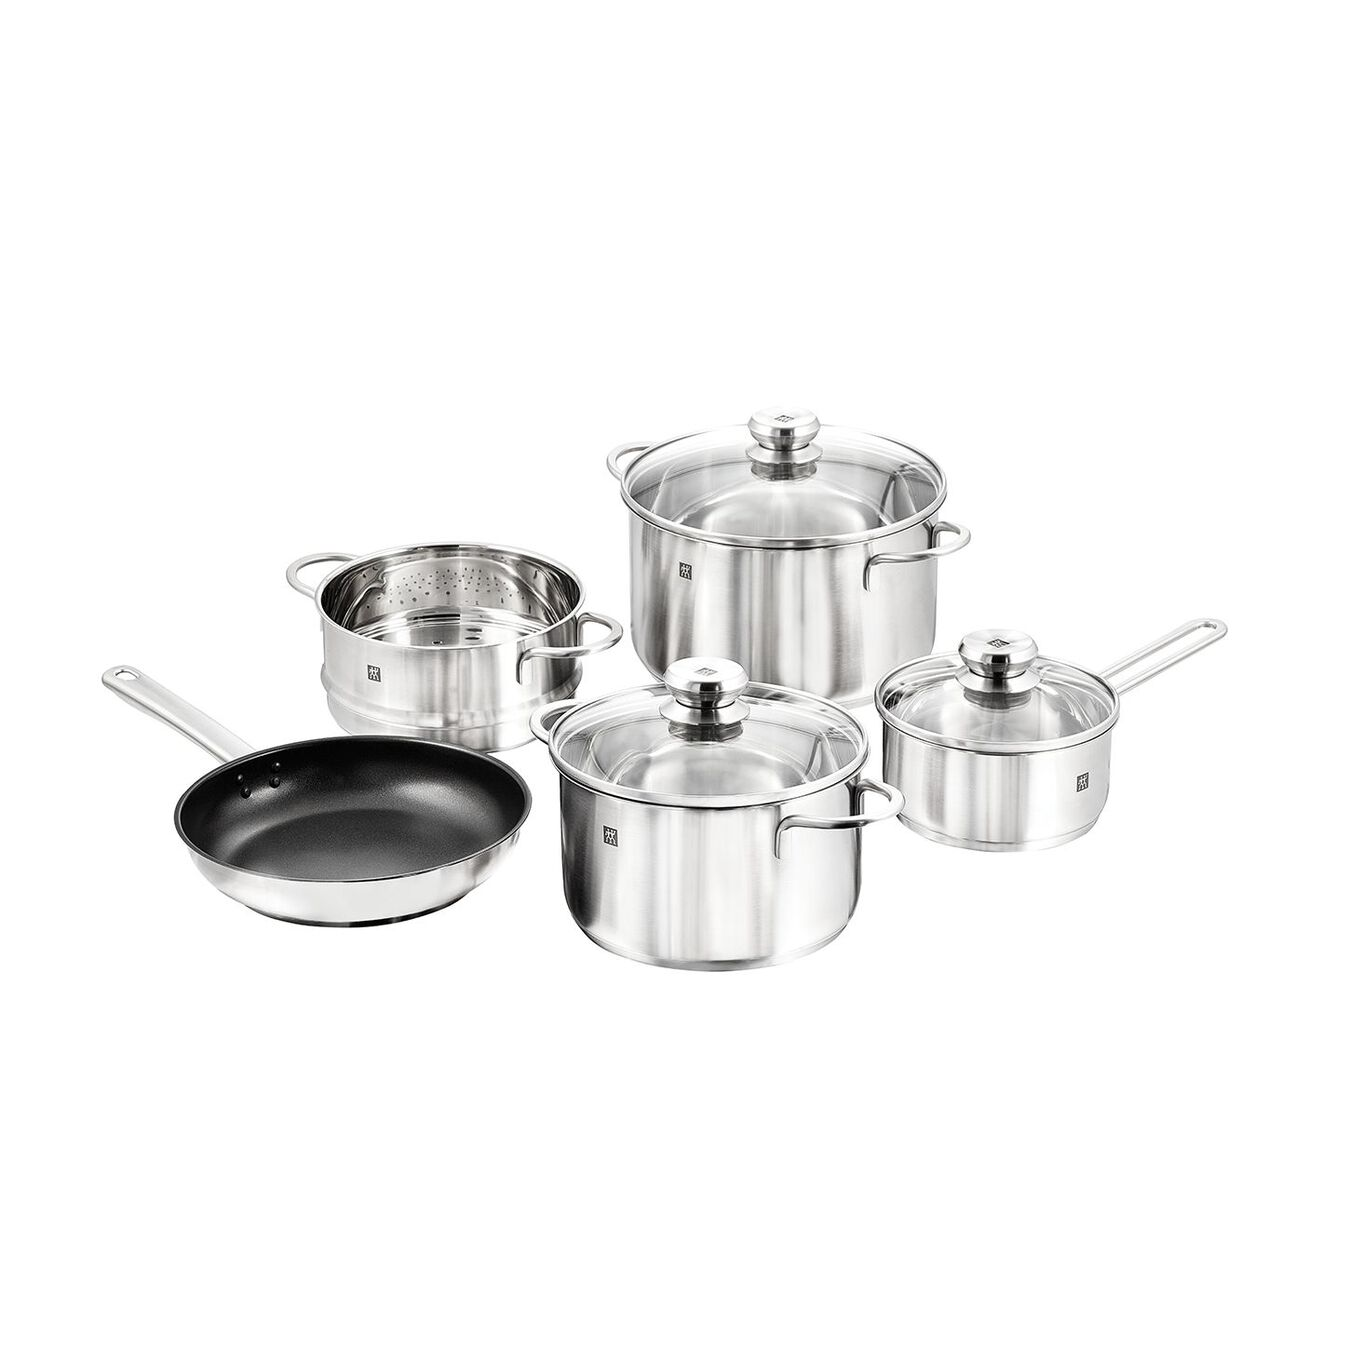 8 Piece 18/10 Stainless Steel Cookware set,,large 1